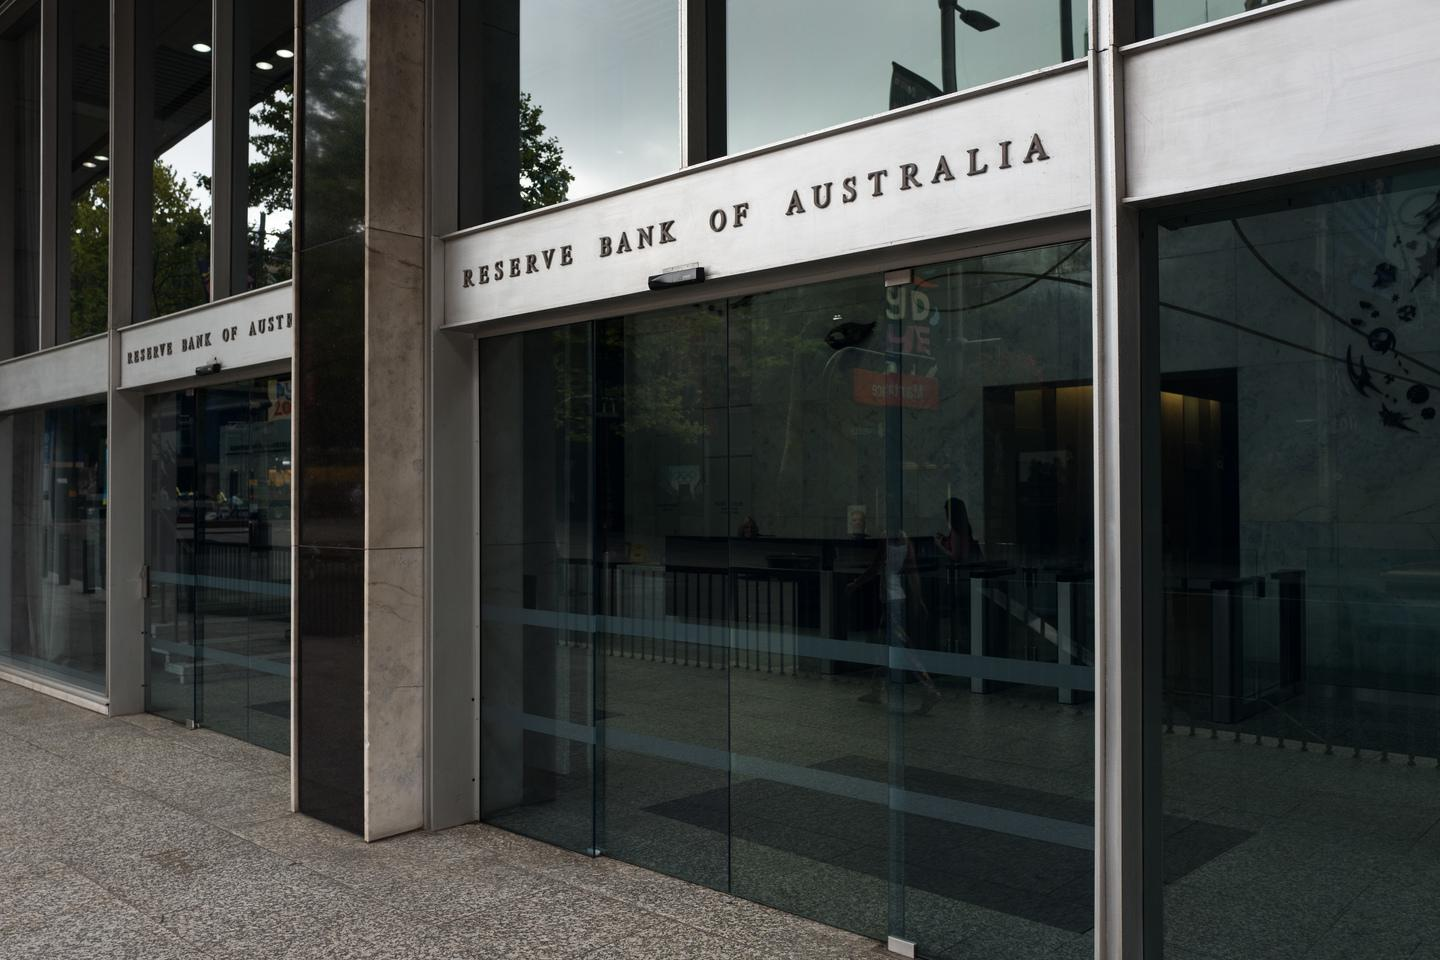 RBA holds rate, outlook remains uncertain